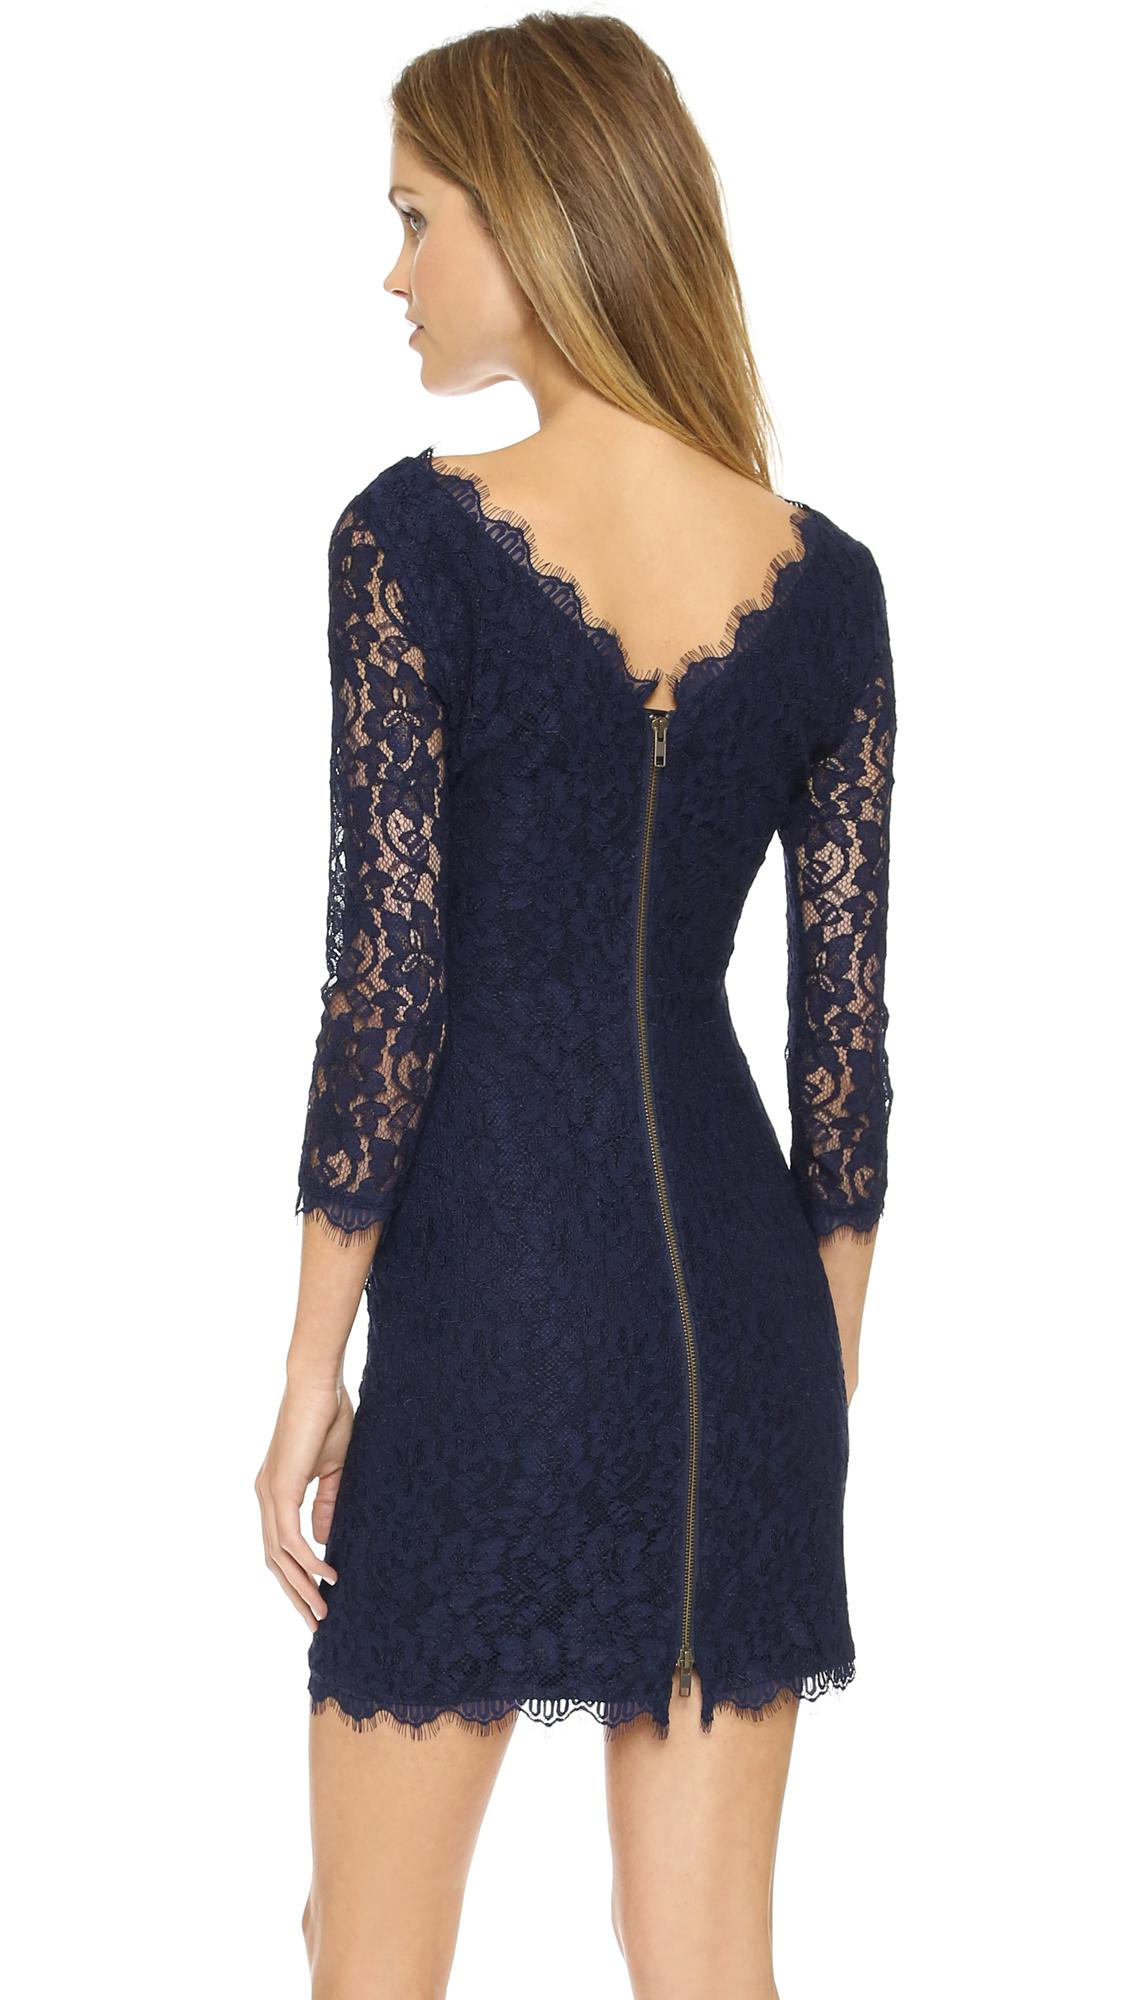 Diane von furstenberg zarita lace dress in blue lyst for Diane von furstenberg clothes